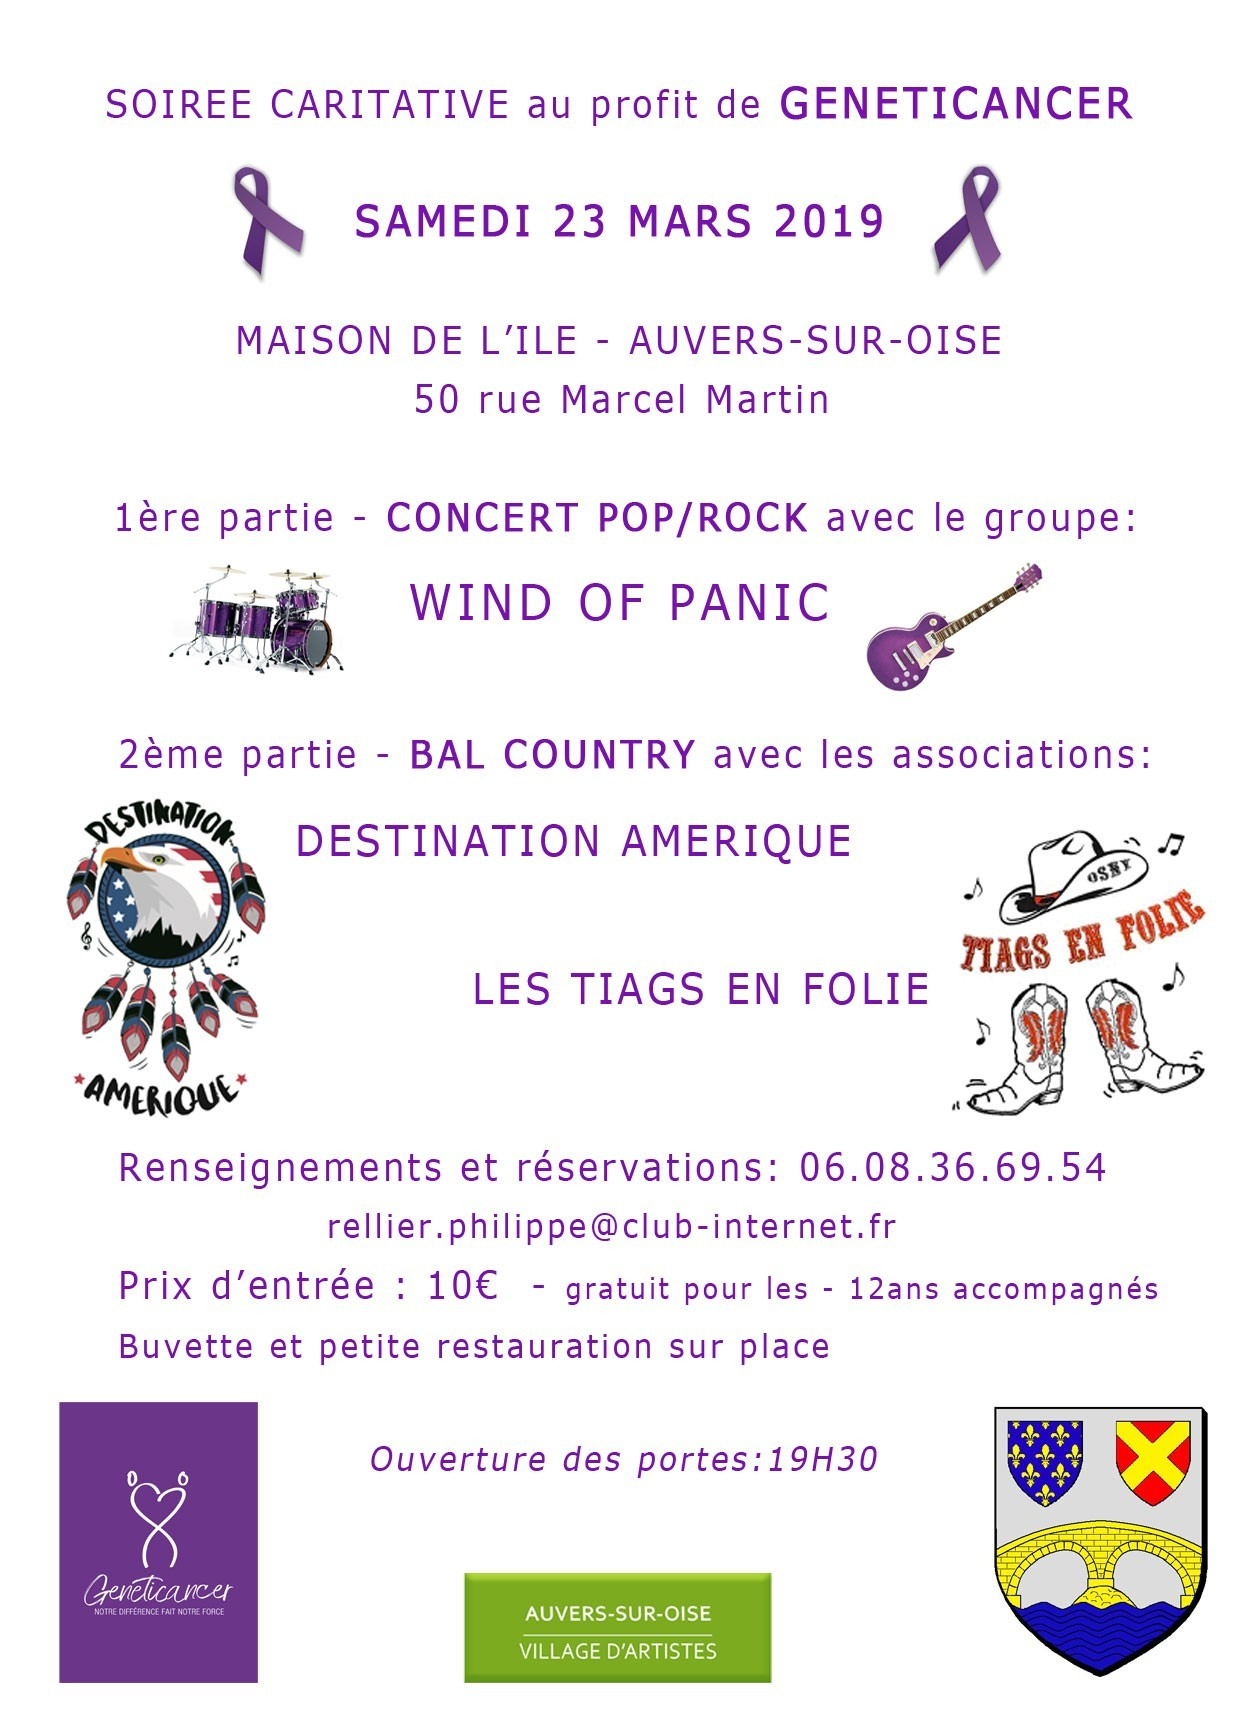 Soirée caritative: Concert POP /ROCK + bal country